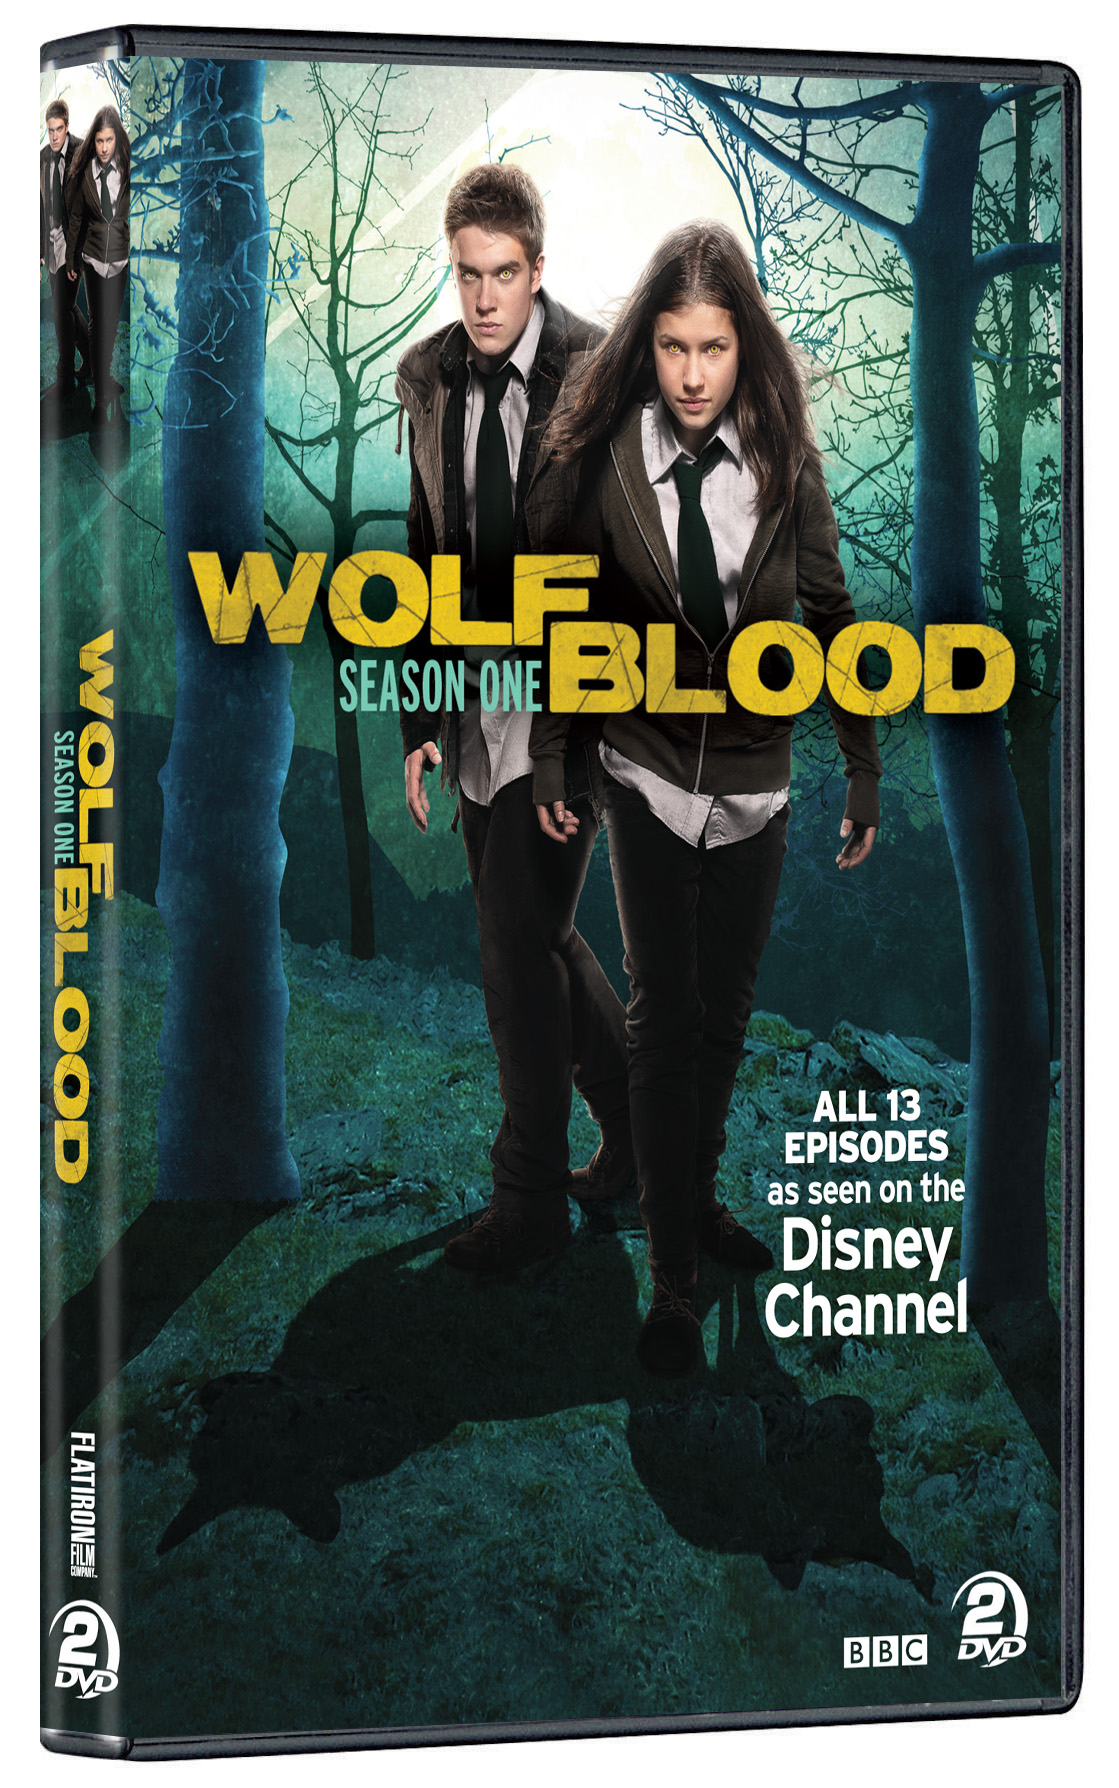 Wolfblood Season 1 Flatiron Film Company Cinedigm